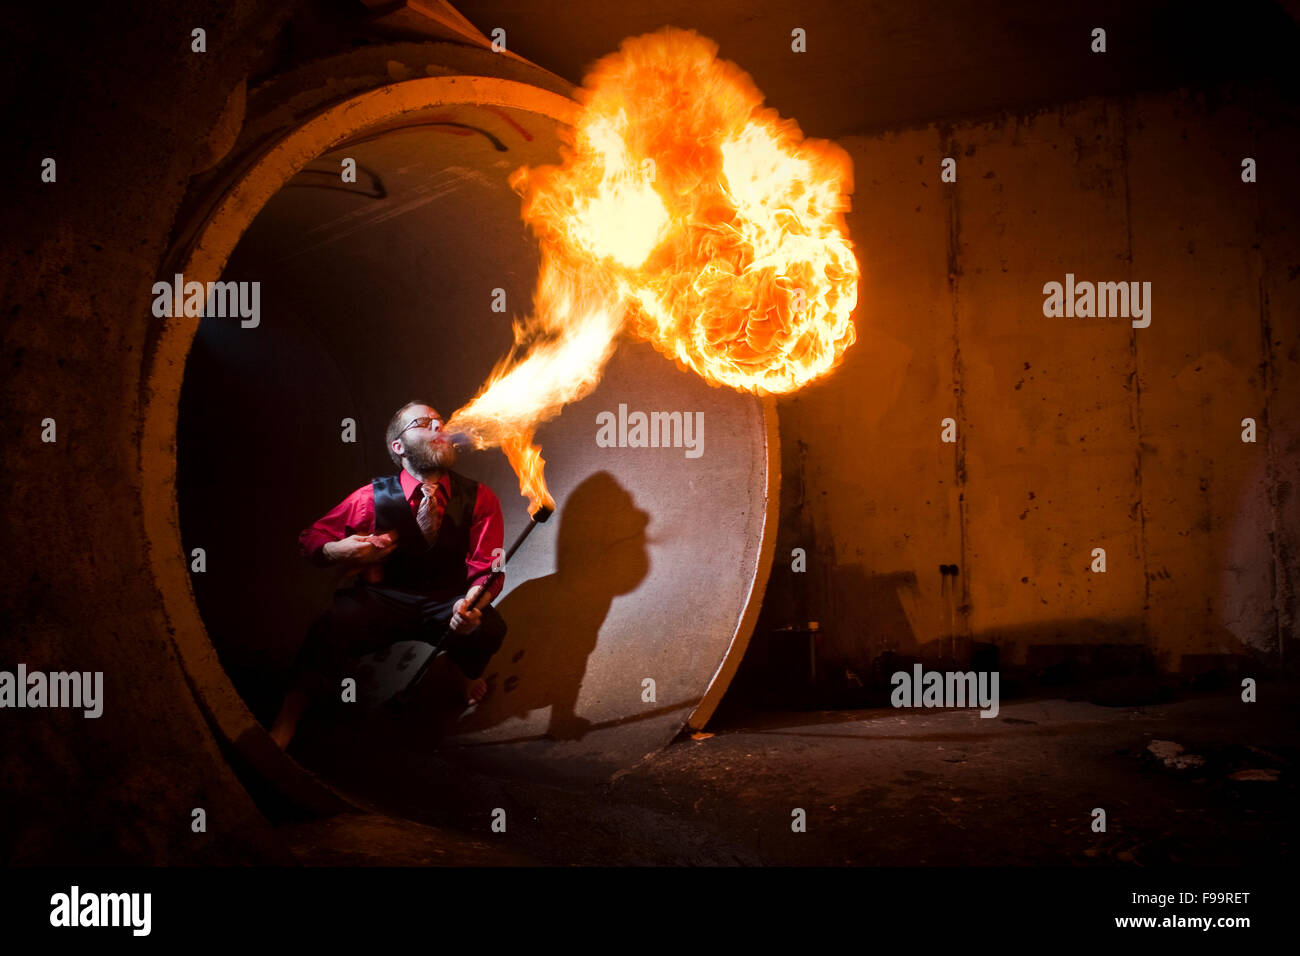 Fire breather blows flame in tunnel. - Stock Image